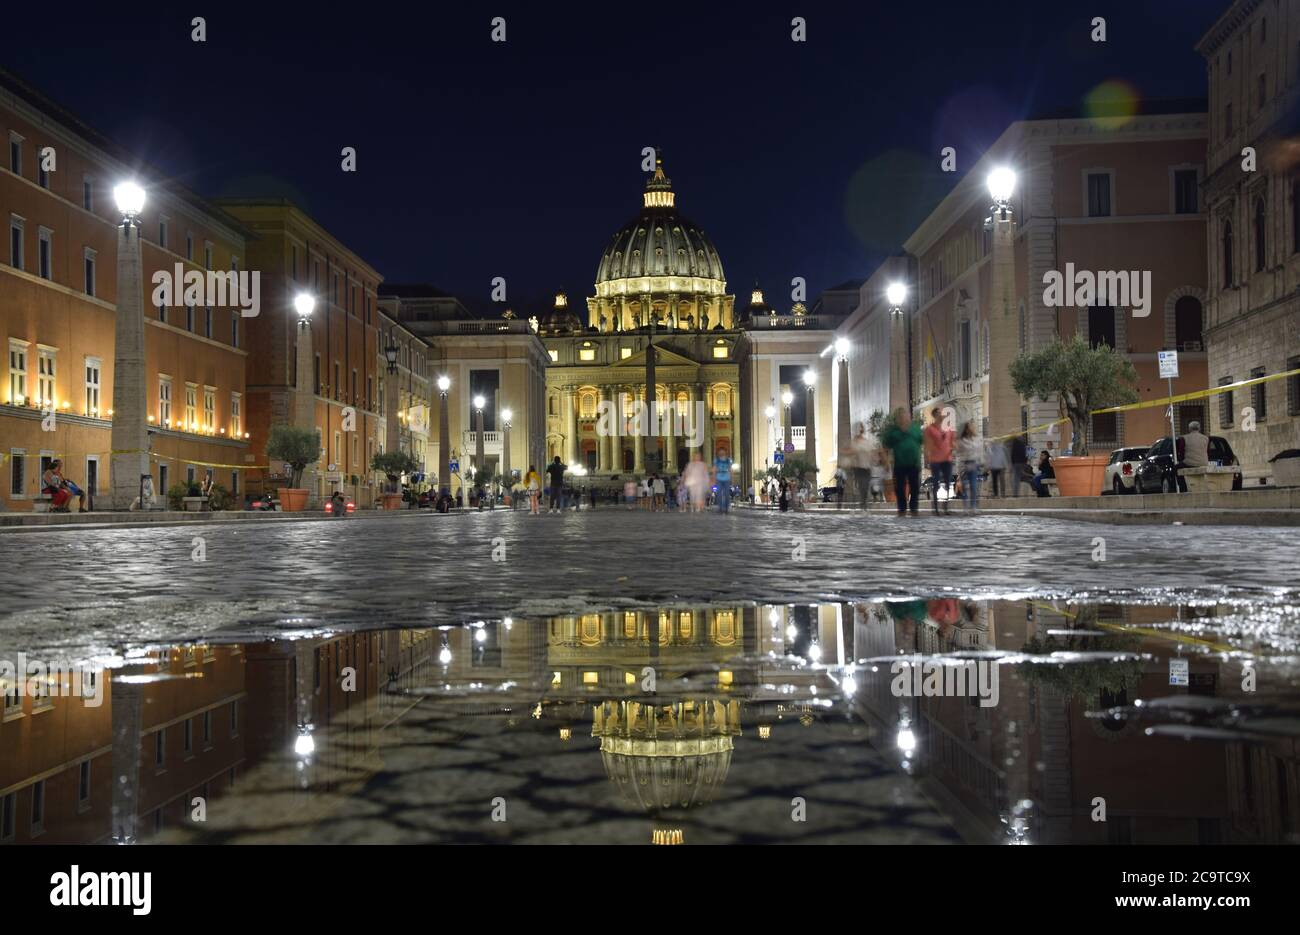 St. Peter's Basilica on St. Peter's Square by night in the city of Rome, Italy Stock Photo